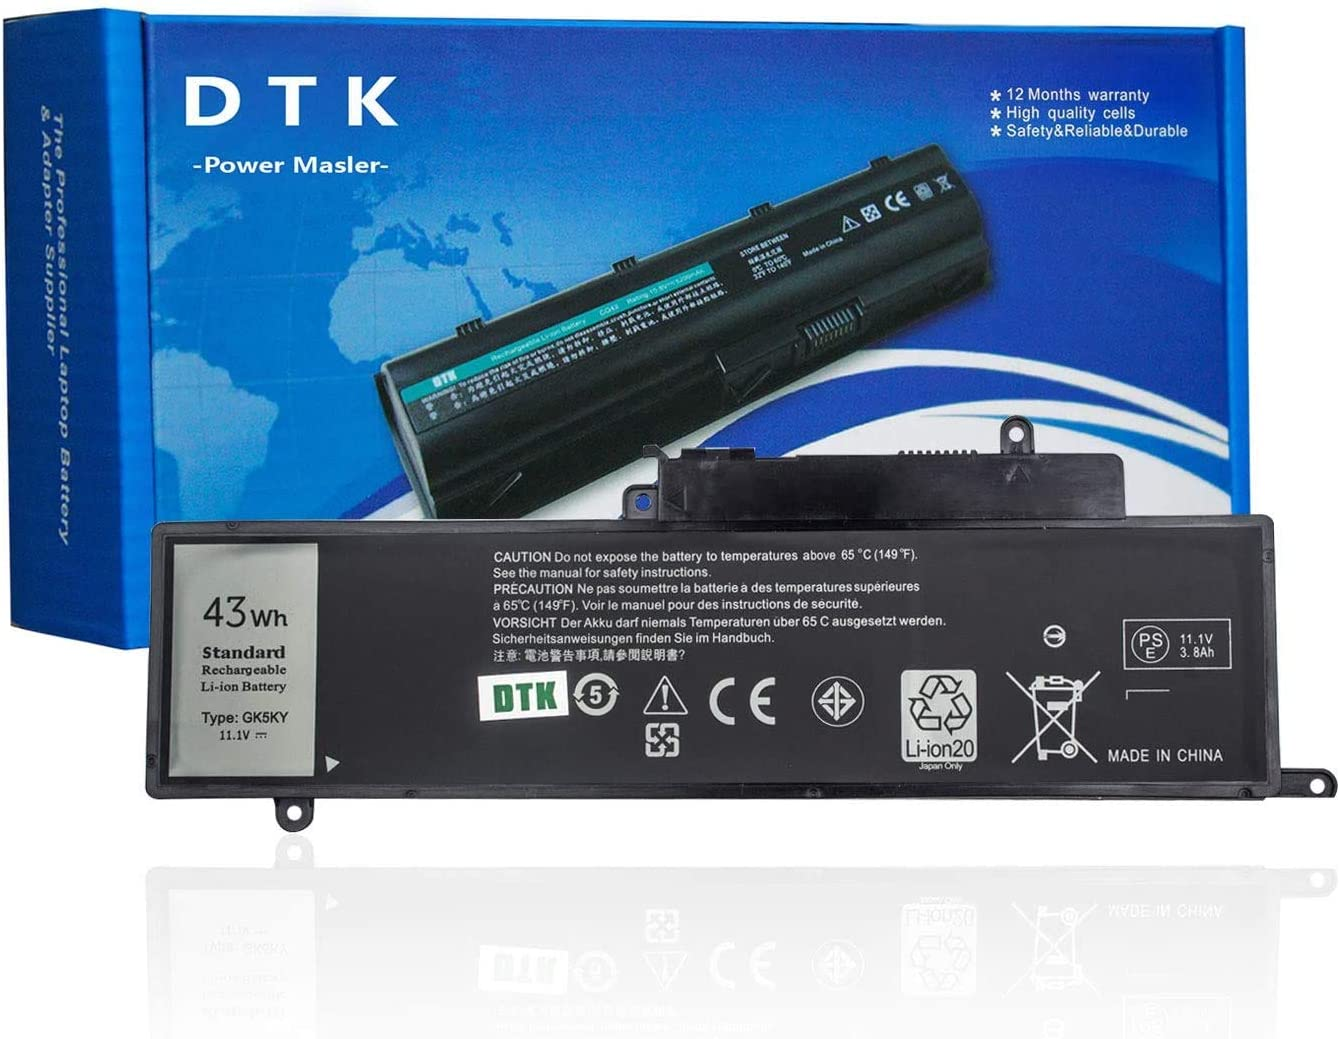 DTK GK5KY Laptop Battery Replacement for Dell Inspiron 11 3147 3000 3148 3152 Series Inspiron 13 7000 7353 7352 7347 7348 7359 7558 7568 Series Notebook 04K8YH 92NCT 092NCT 4K8YH P20T 11.1V 43Wh